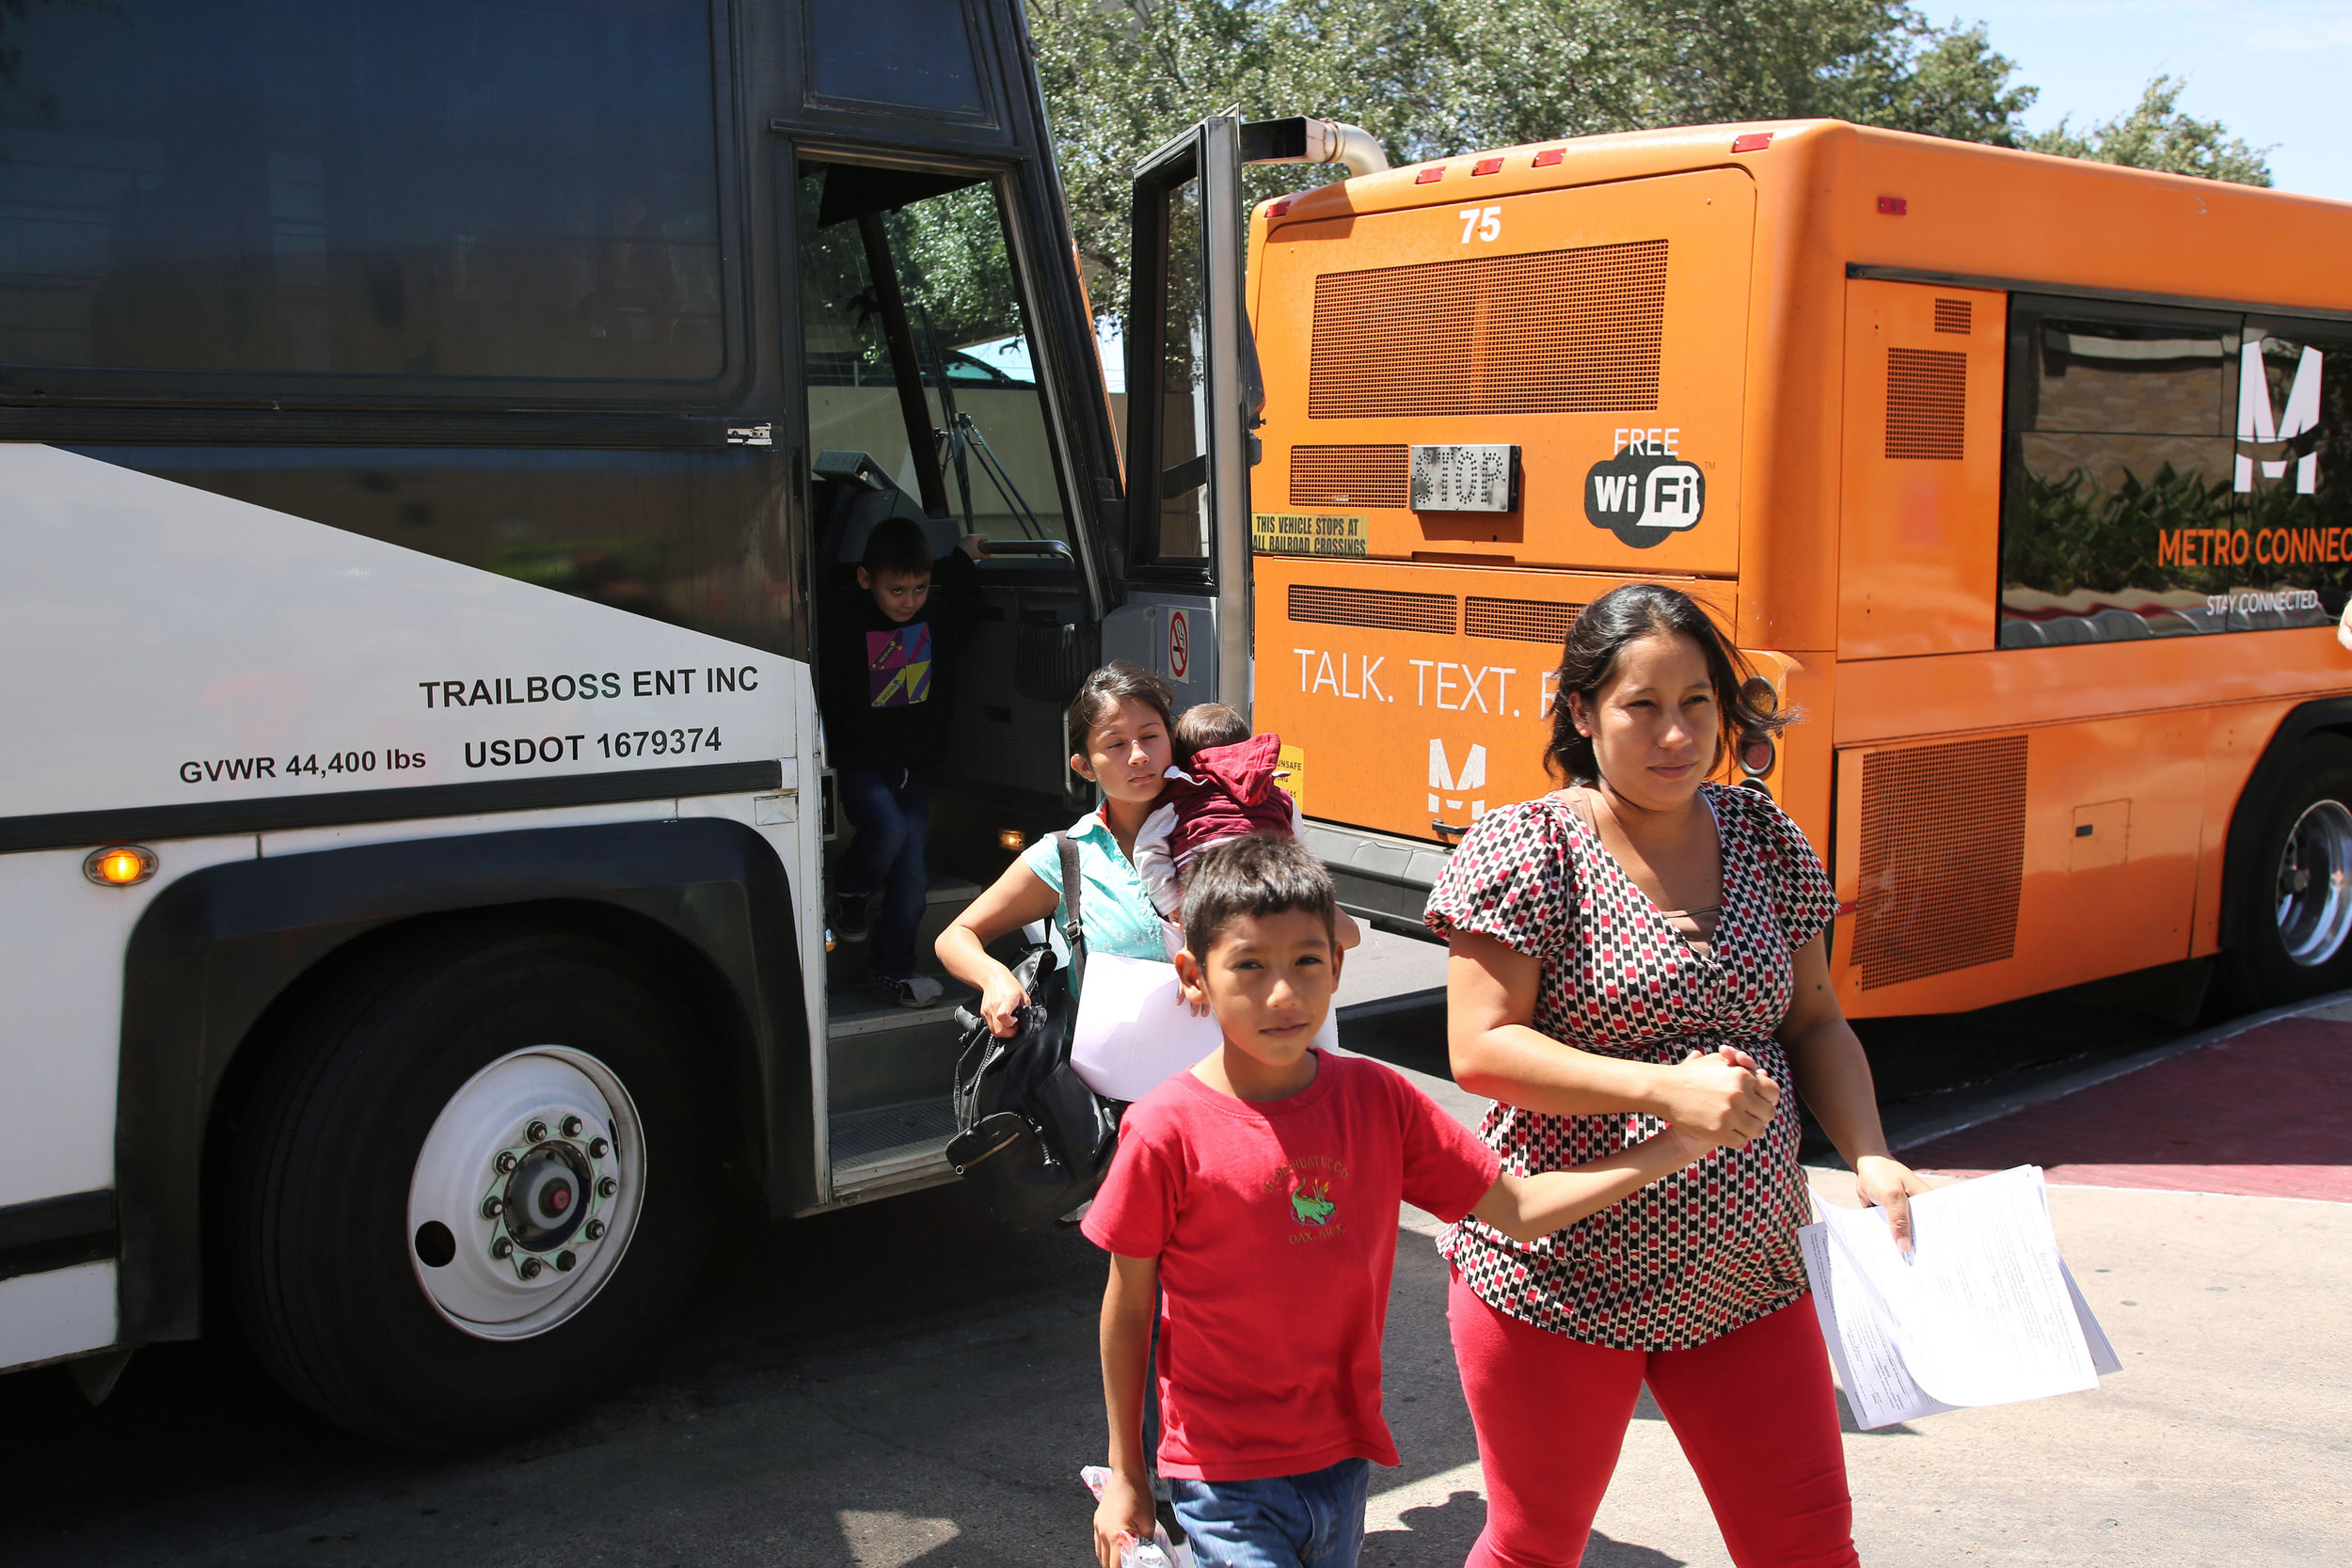 Central American families seeking asylum at our southern border get off a bus after being released from a detention center.